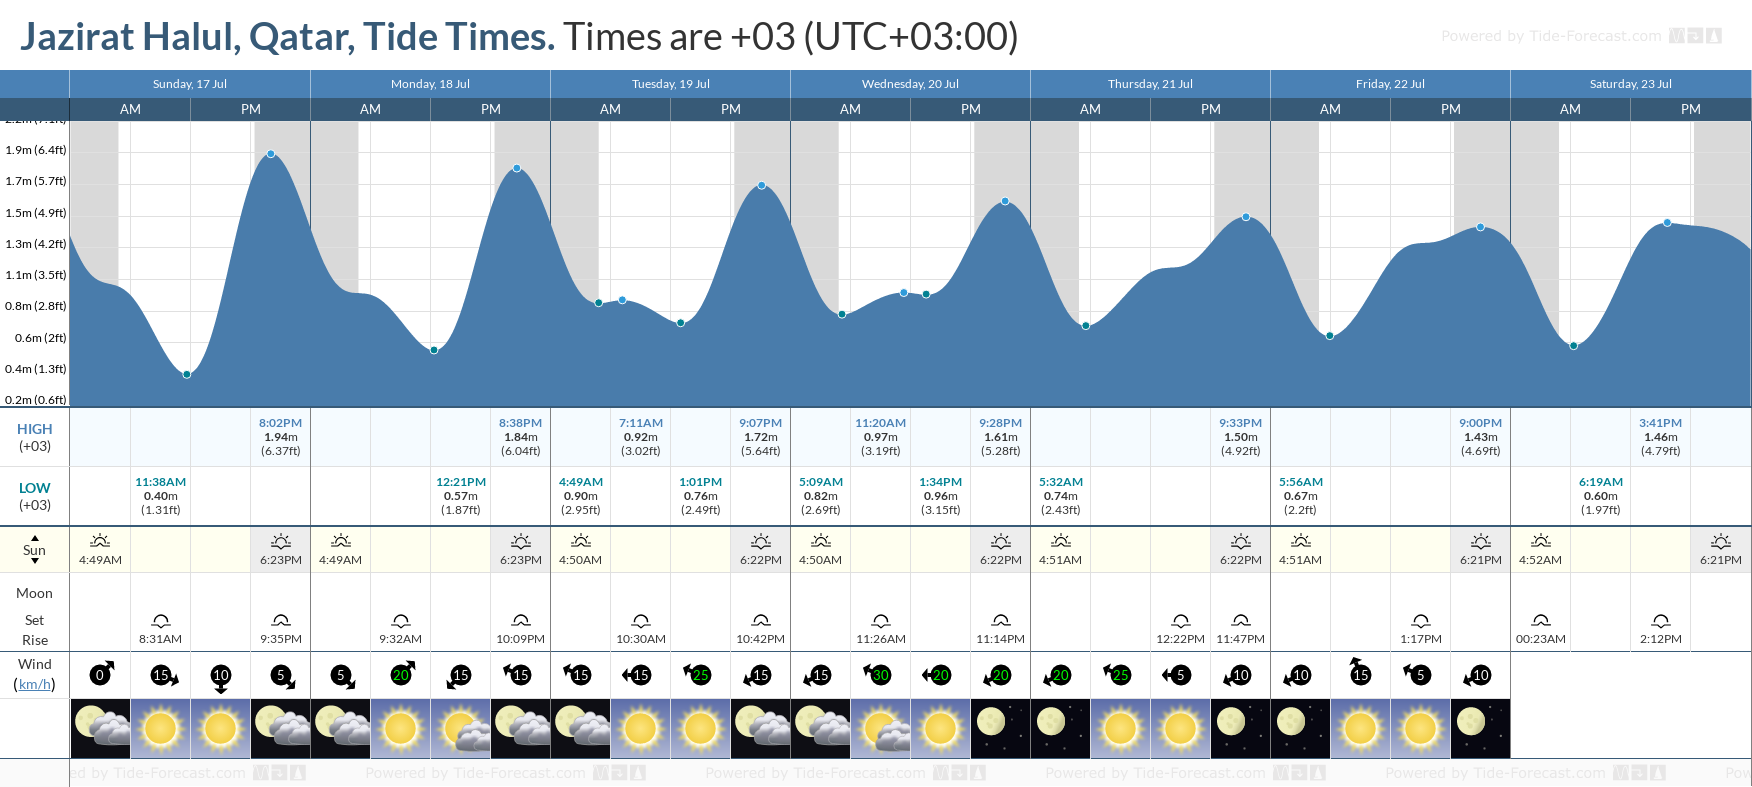 Jazirat Halul, Qatar Tide Chart including high and low tide tide times for the next 7 days